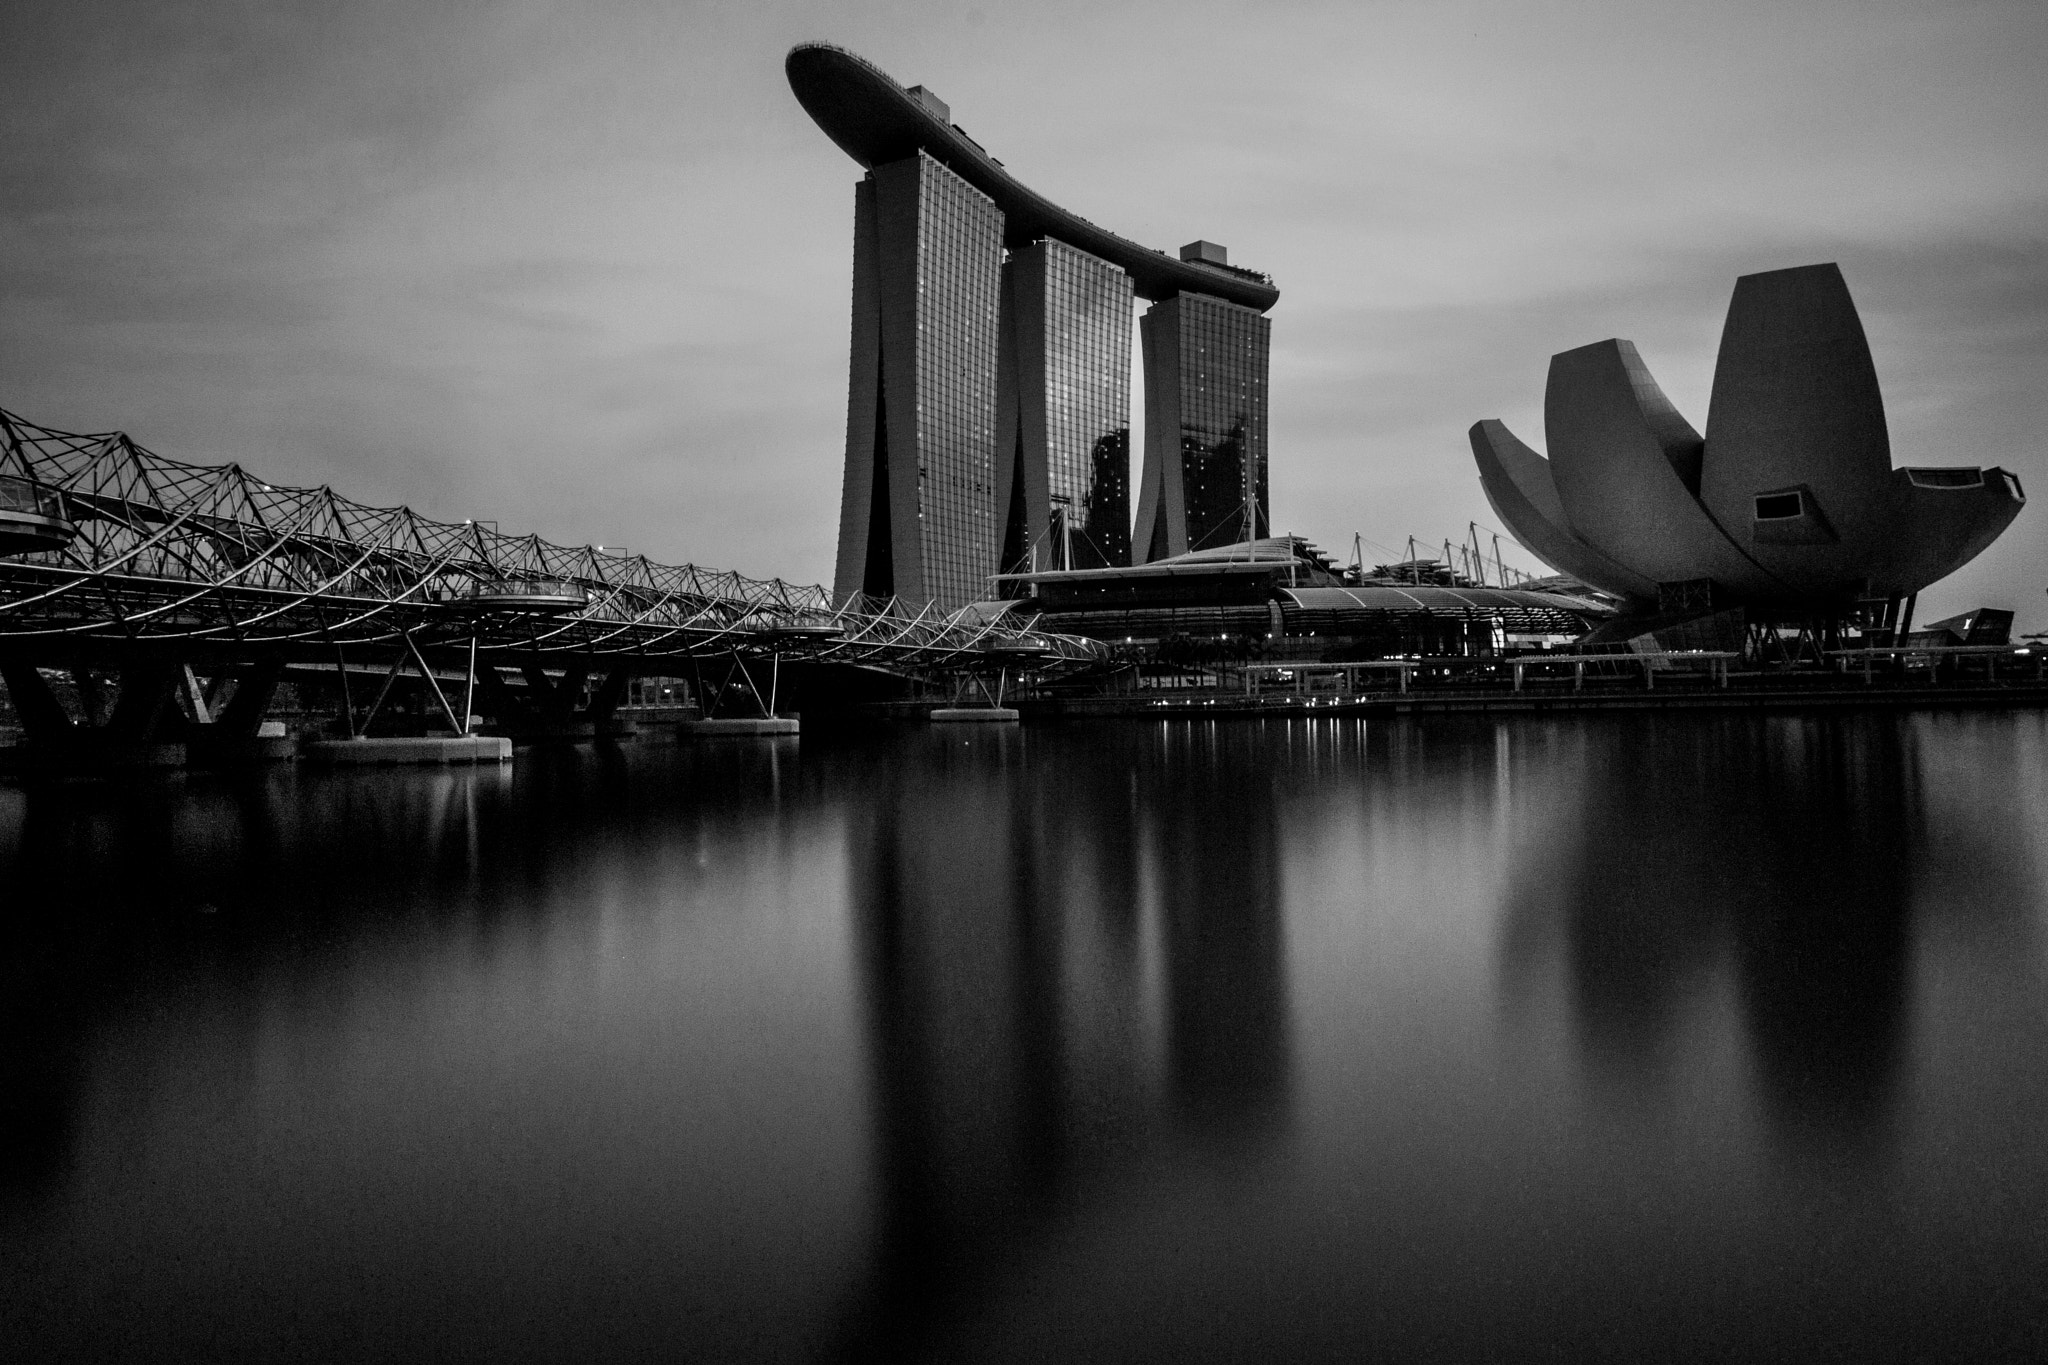 Photograph Marina Bay Sands, Singapore by Antonio Obispo on 500px